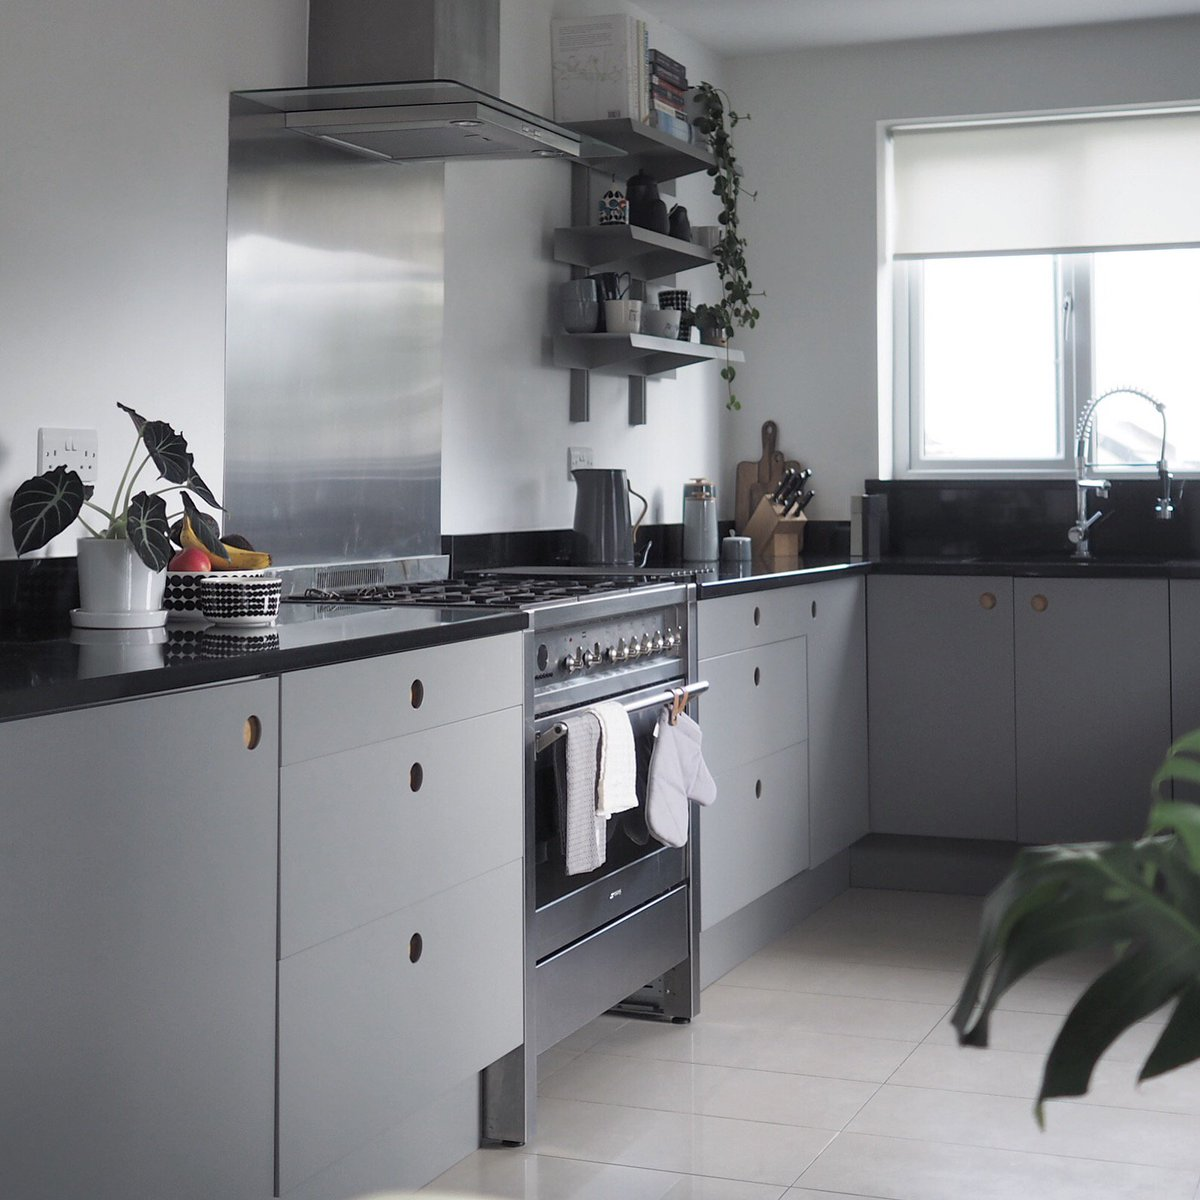 Naked Doors On Twitter We Are Loving The Scandi Style In This Stunning And Striking Kitchen From Nordicnotes Nakeddoors Purescandi Scandistyle Scandikitchen Greykitchen Birchply Bespokekitchen Kitchenrenovation Ikeahack Kitchendecor